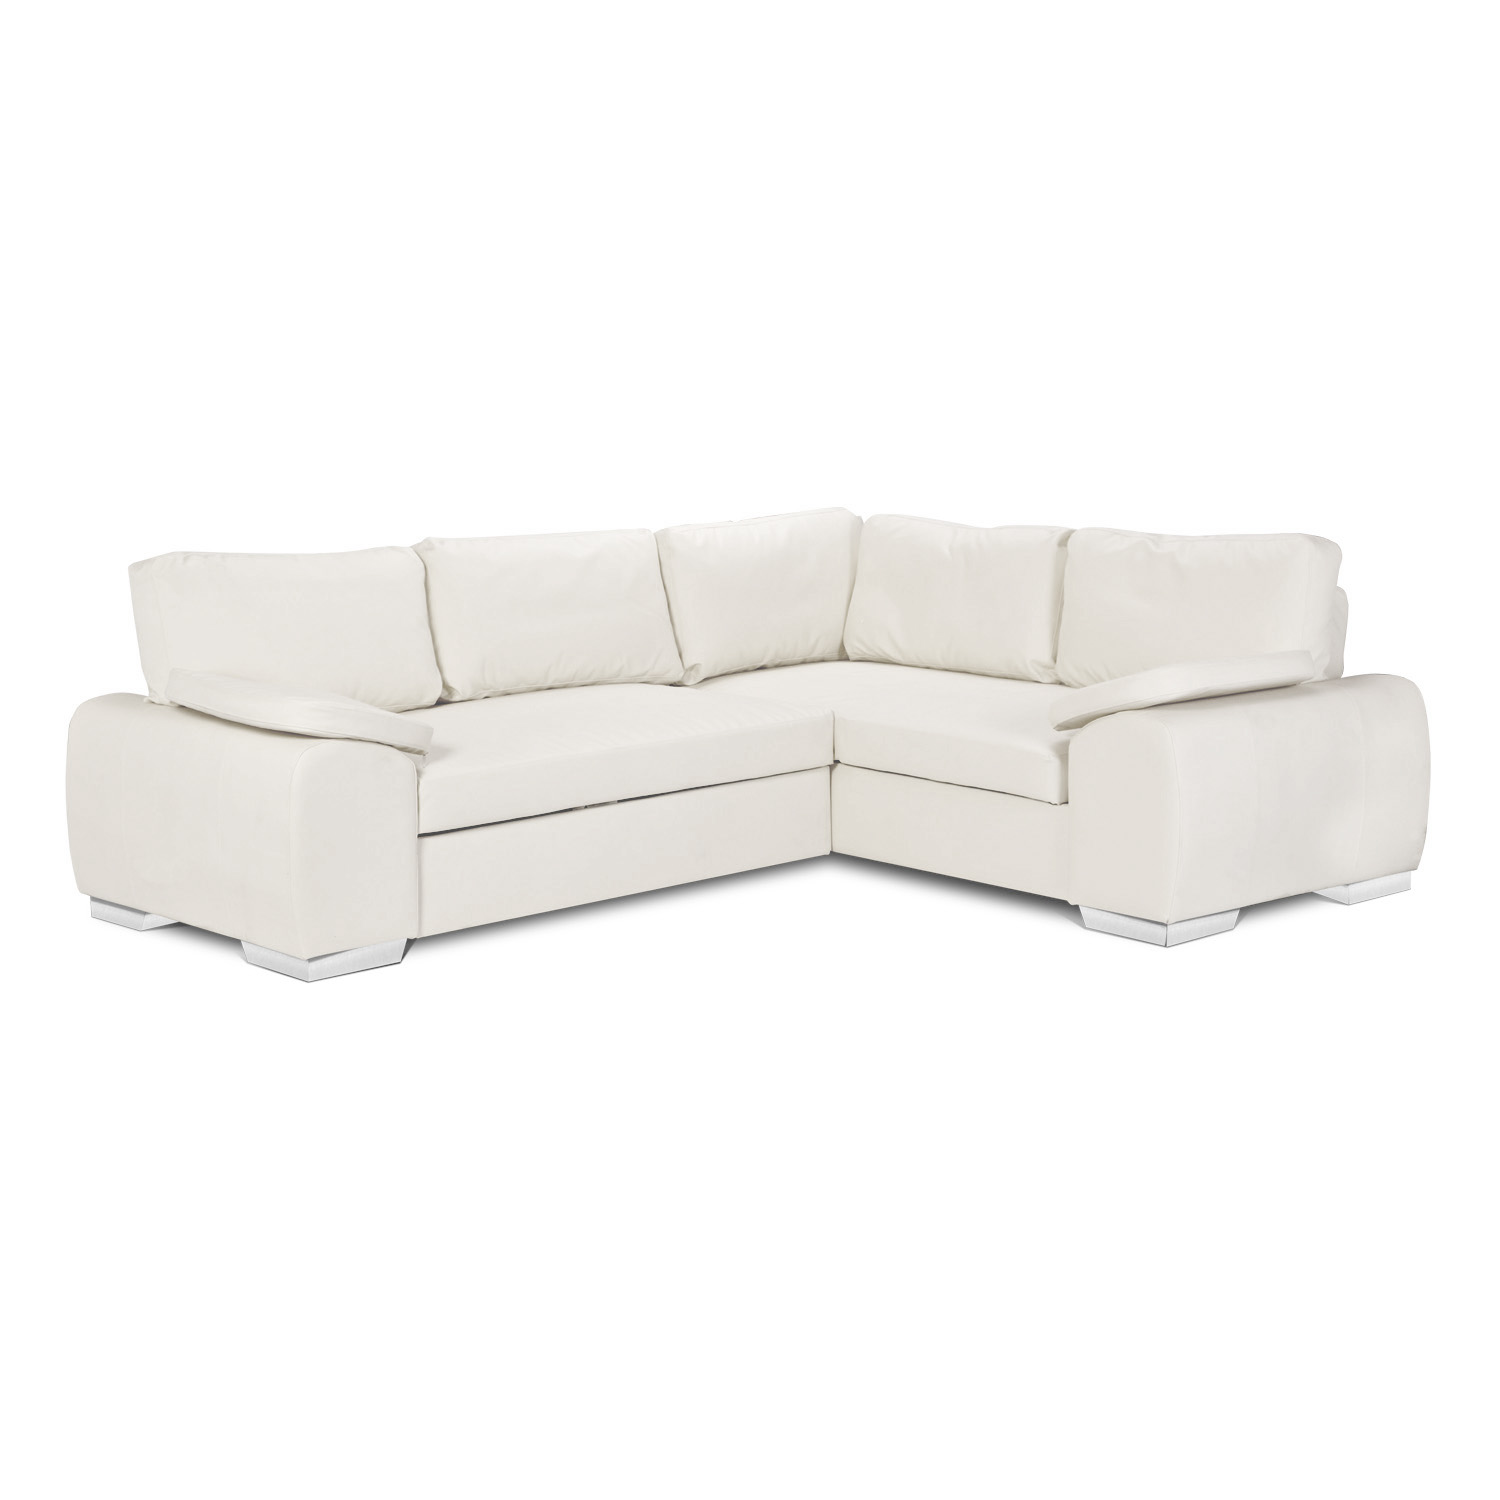 Flat packed sofas and other furniture returns!